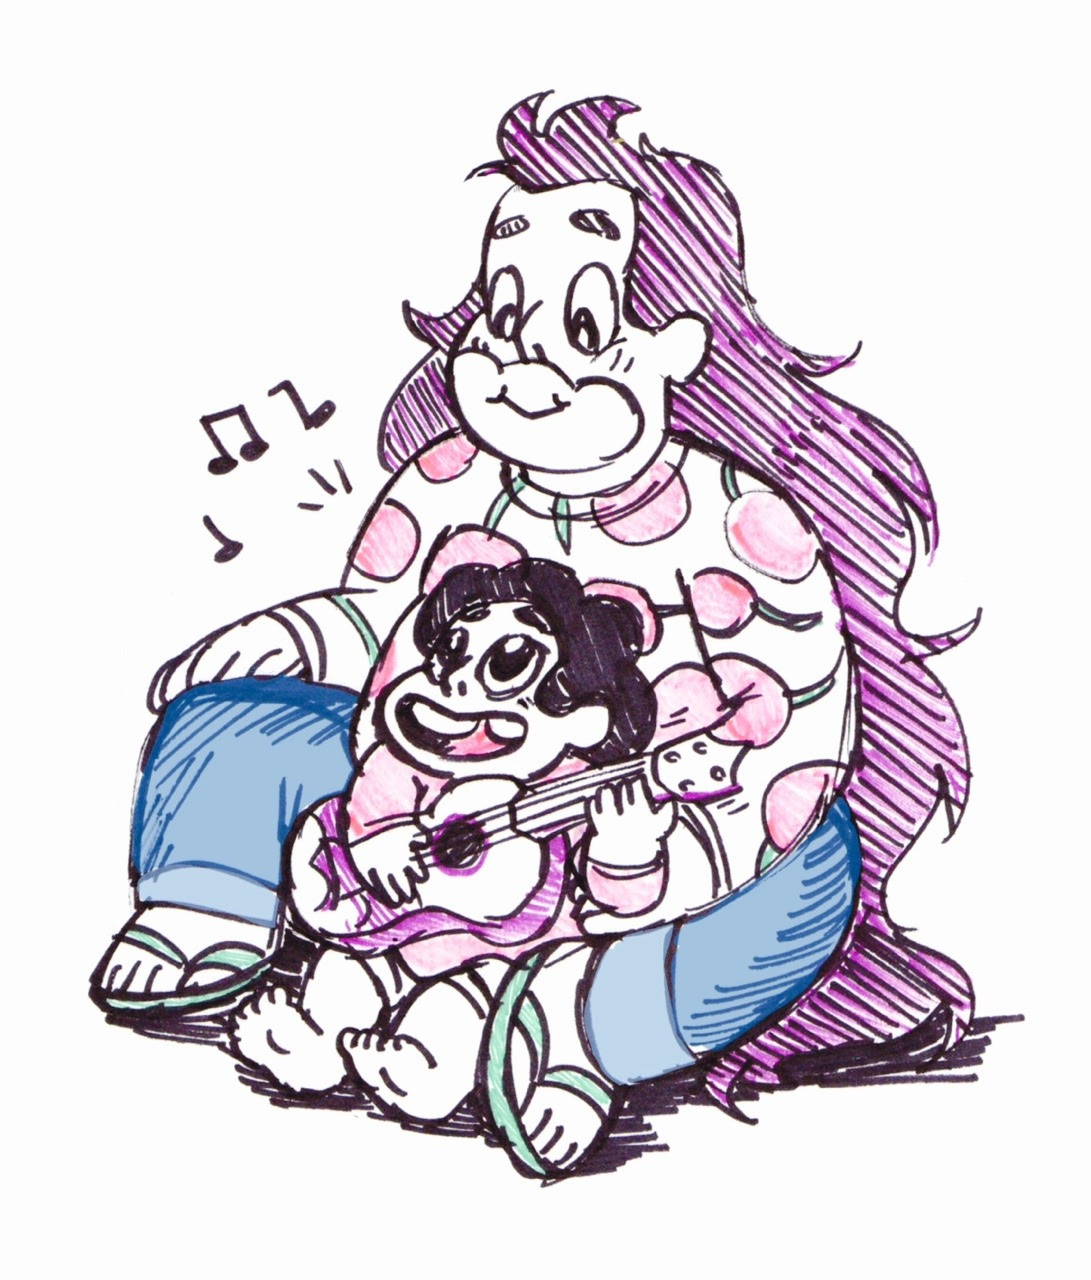 Steven Universe 30 Day Art Challenge Day 8 - Favorite SU parent Greg, Greg, also Greg. I drew this with random sharpies so guitar dad has purple hair now. Don't judge.